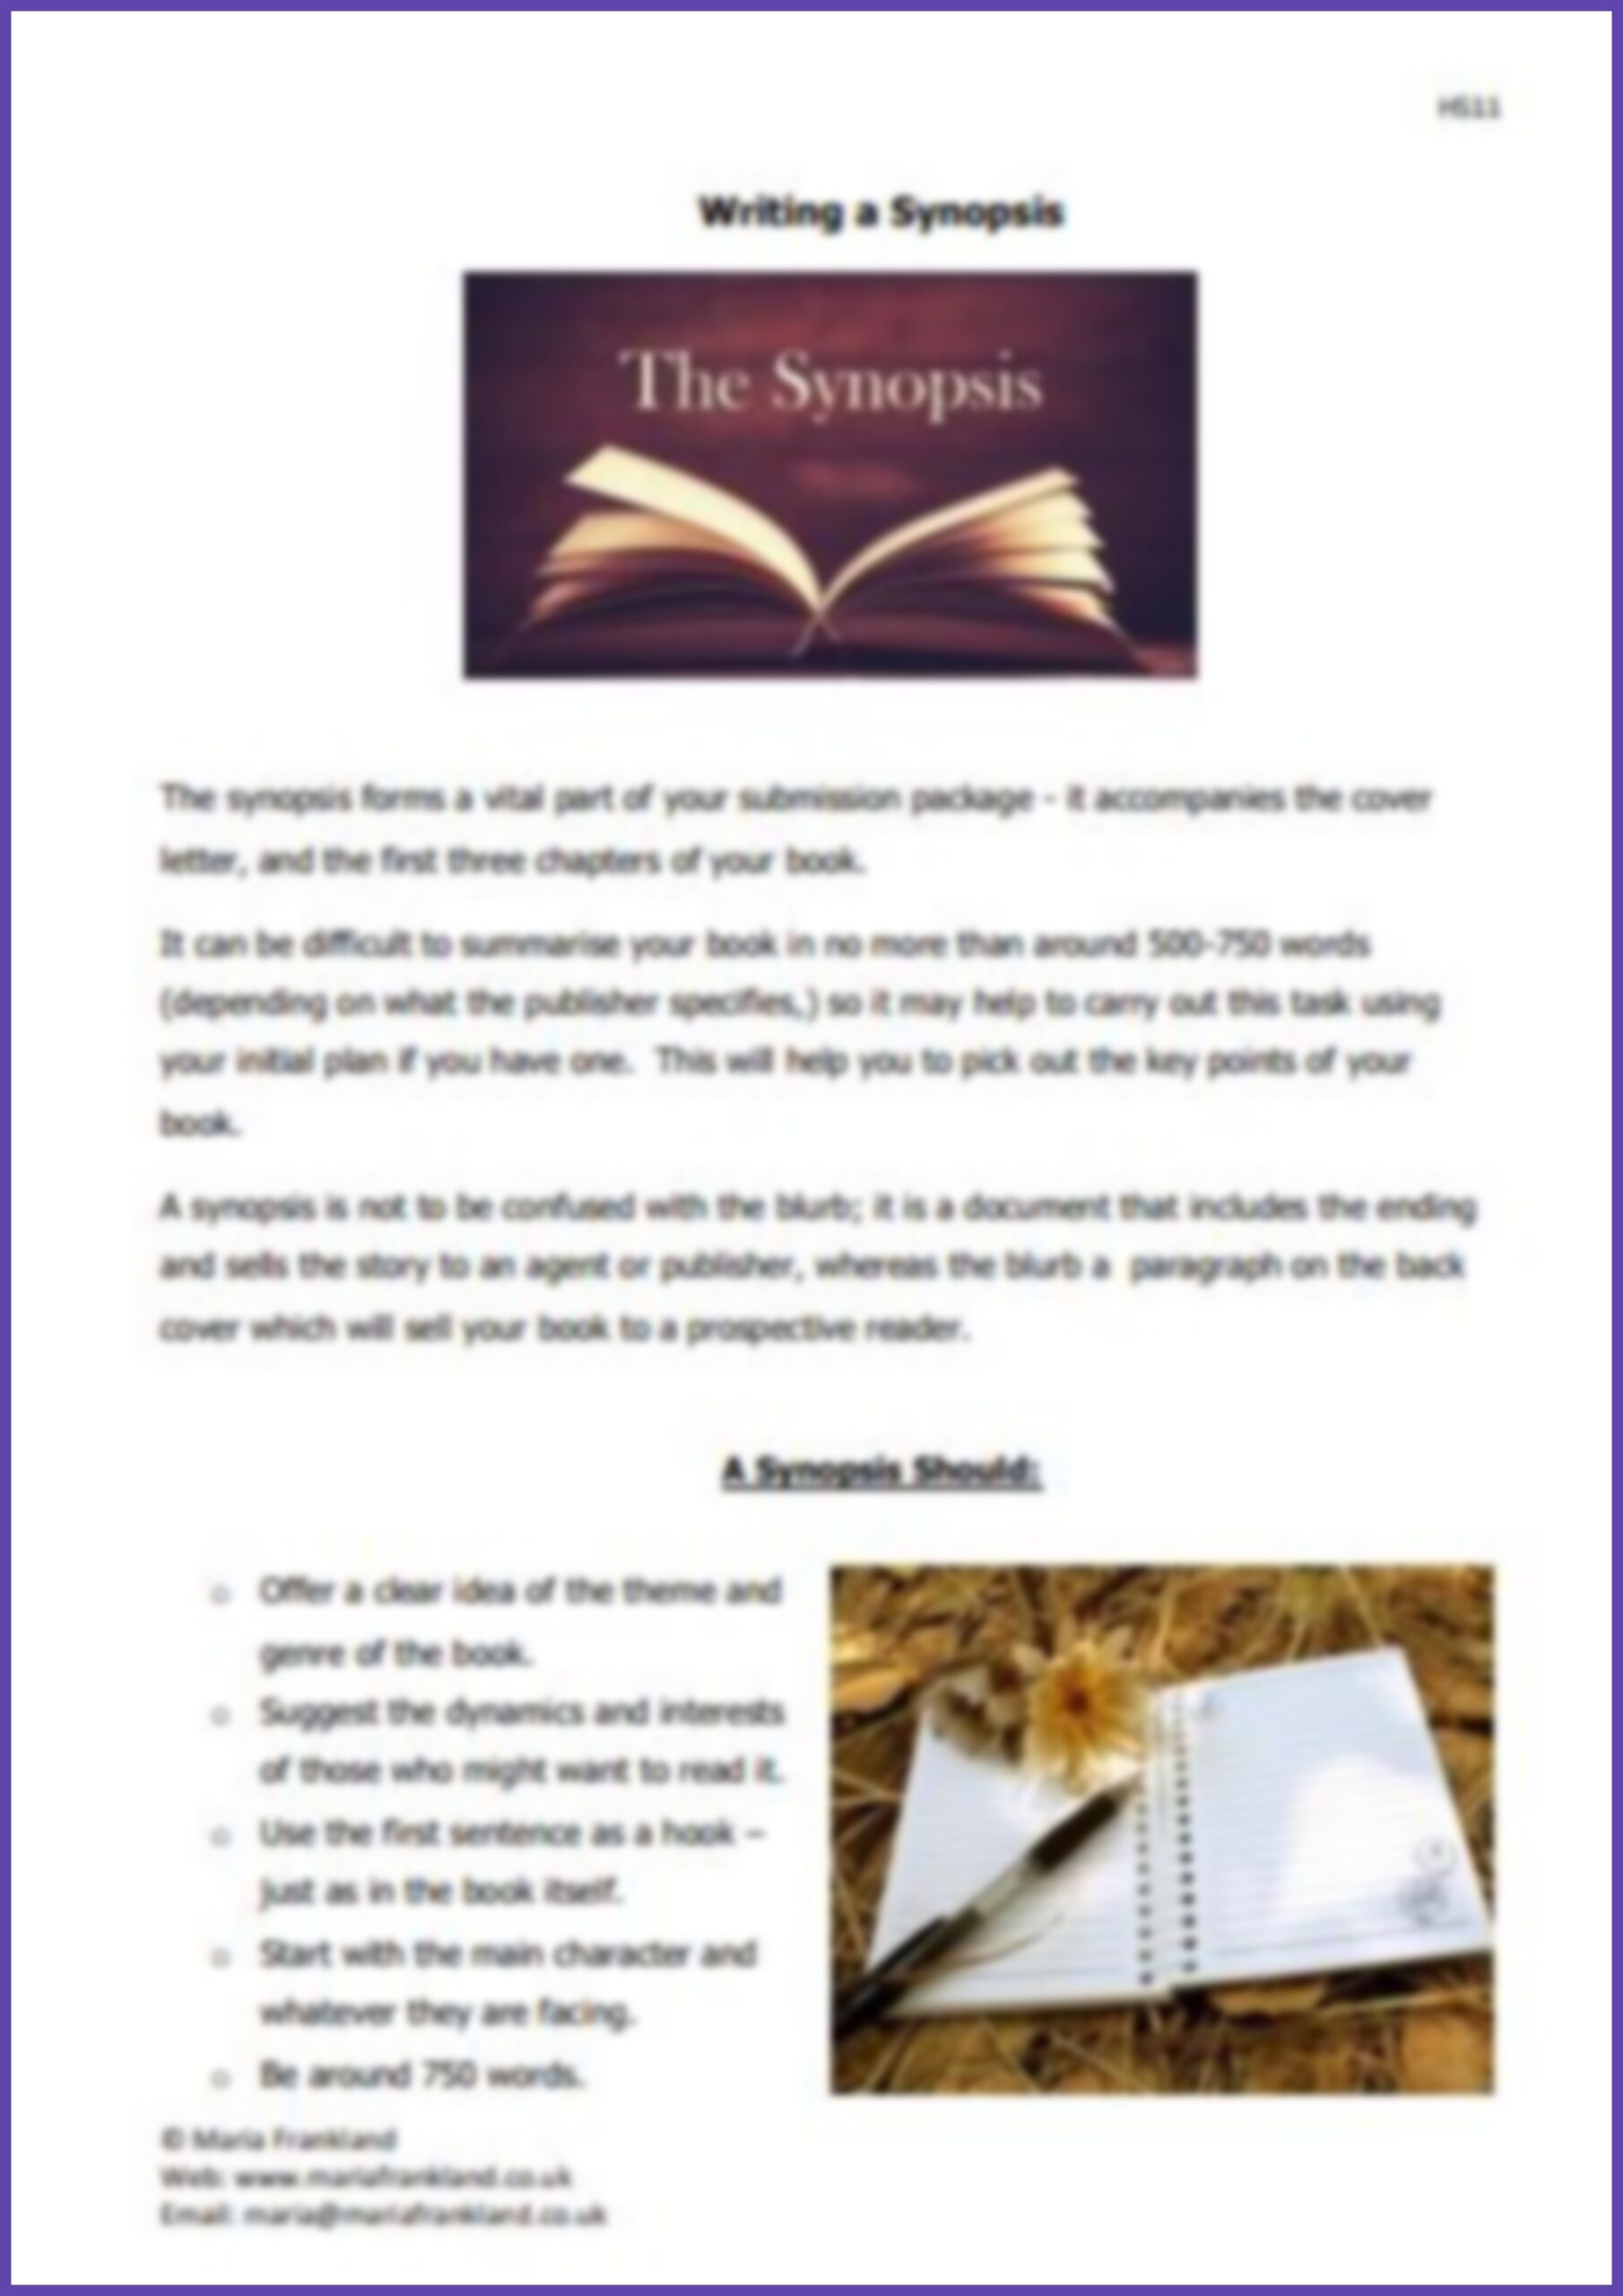 99p (3 sheets) Writing a Synopsis